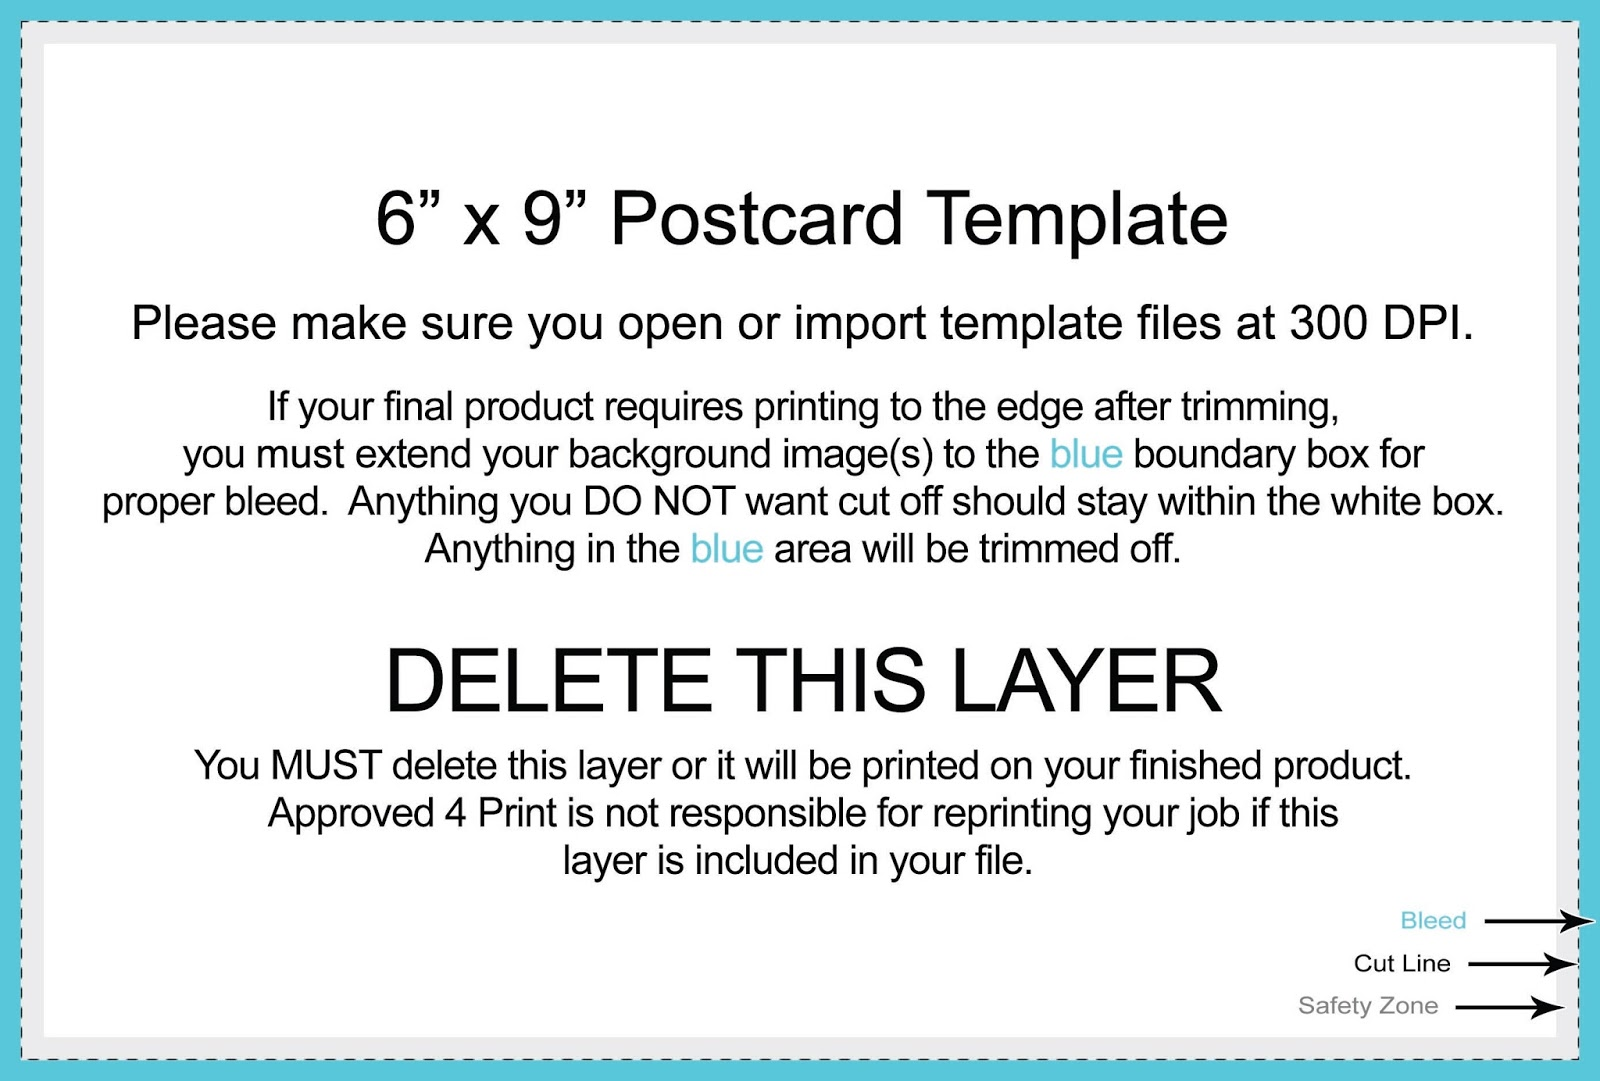 X Postcard Template Photoshop Free Download DTemplates - Card template free: 6x9 postcard template